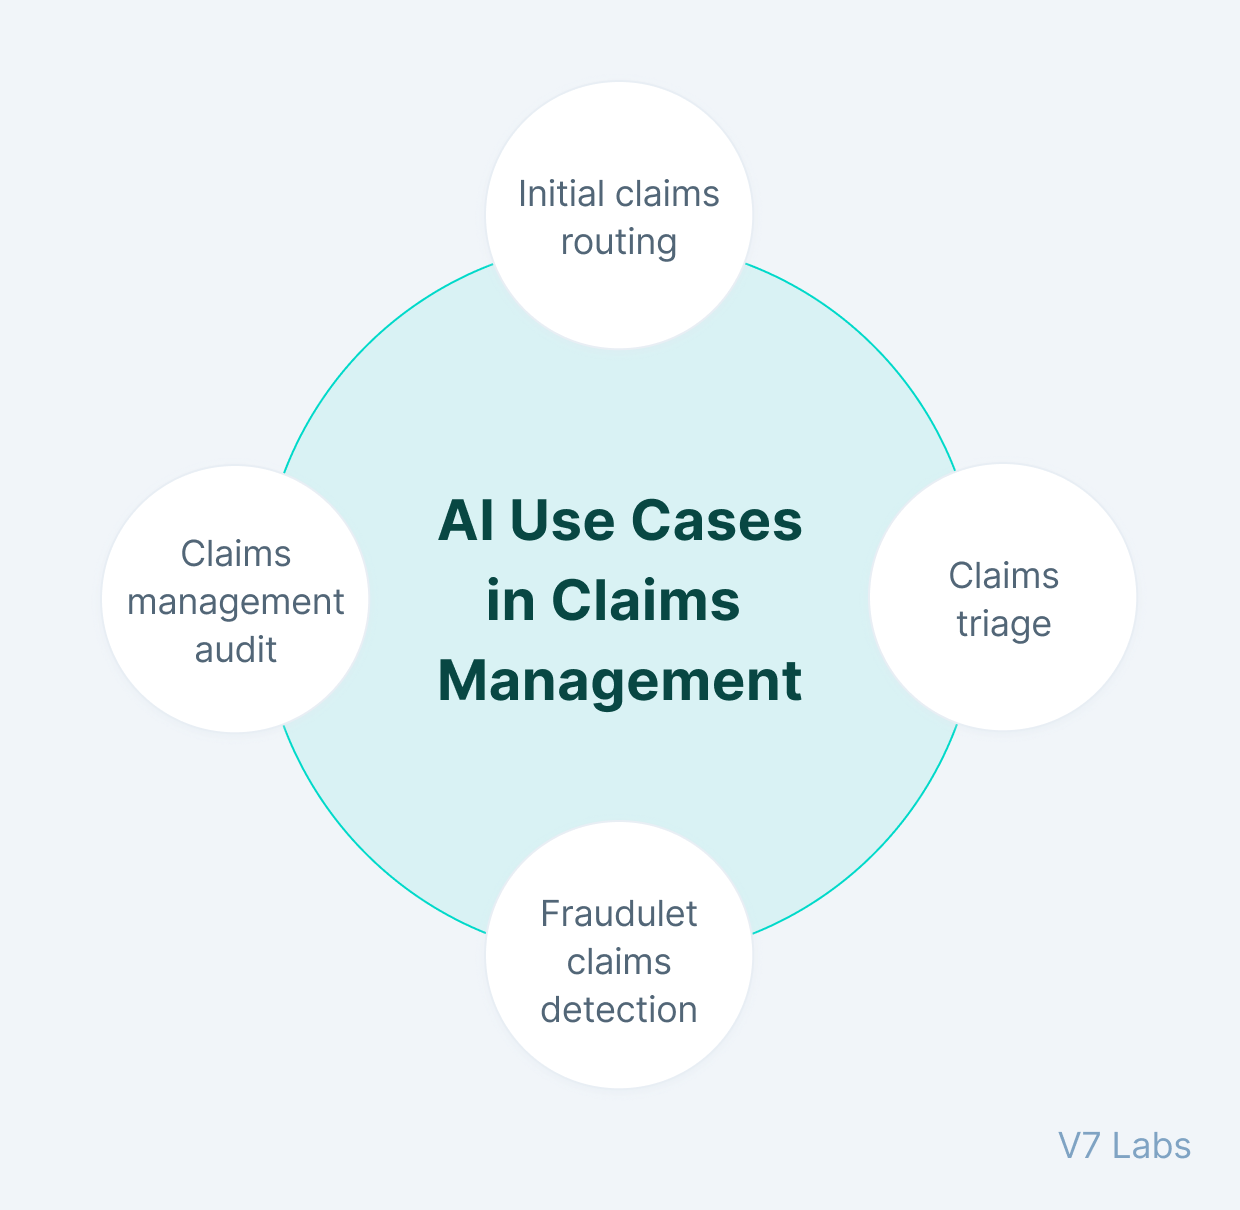 AI use cases in claims managament